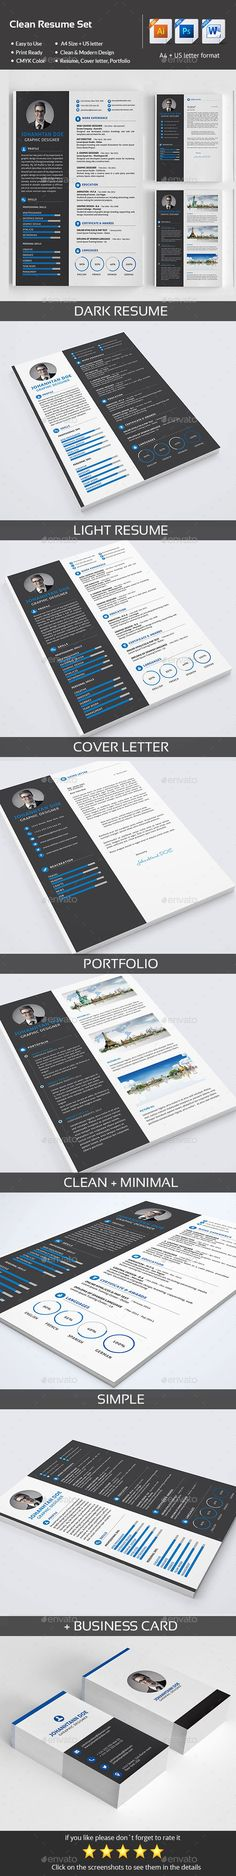 Professional Resume Template for Word \ Pages, Resume Cover Letter - free resume template downloads for word